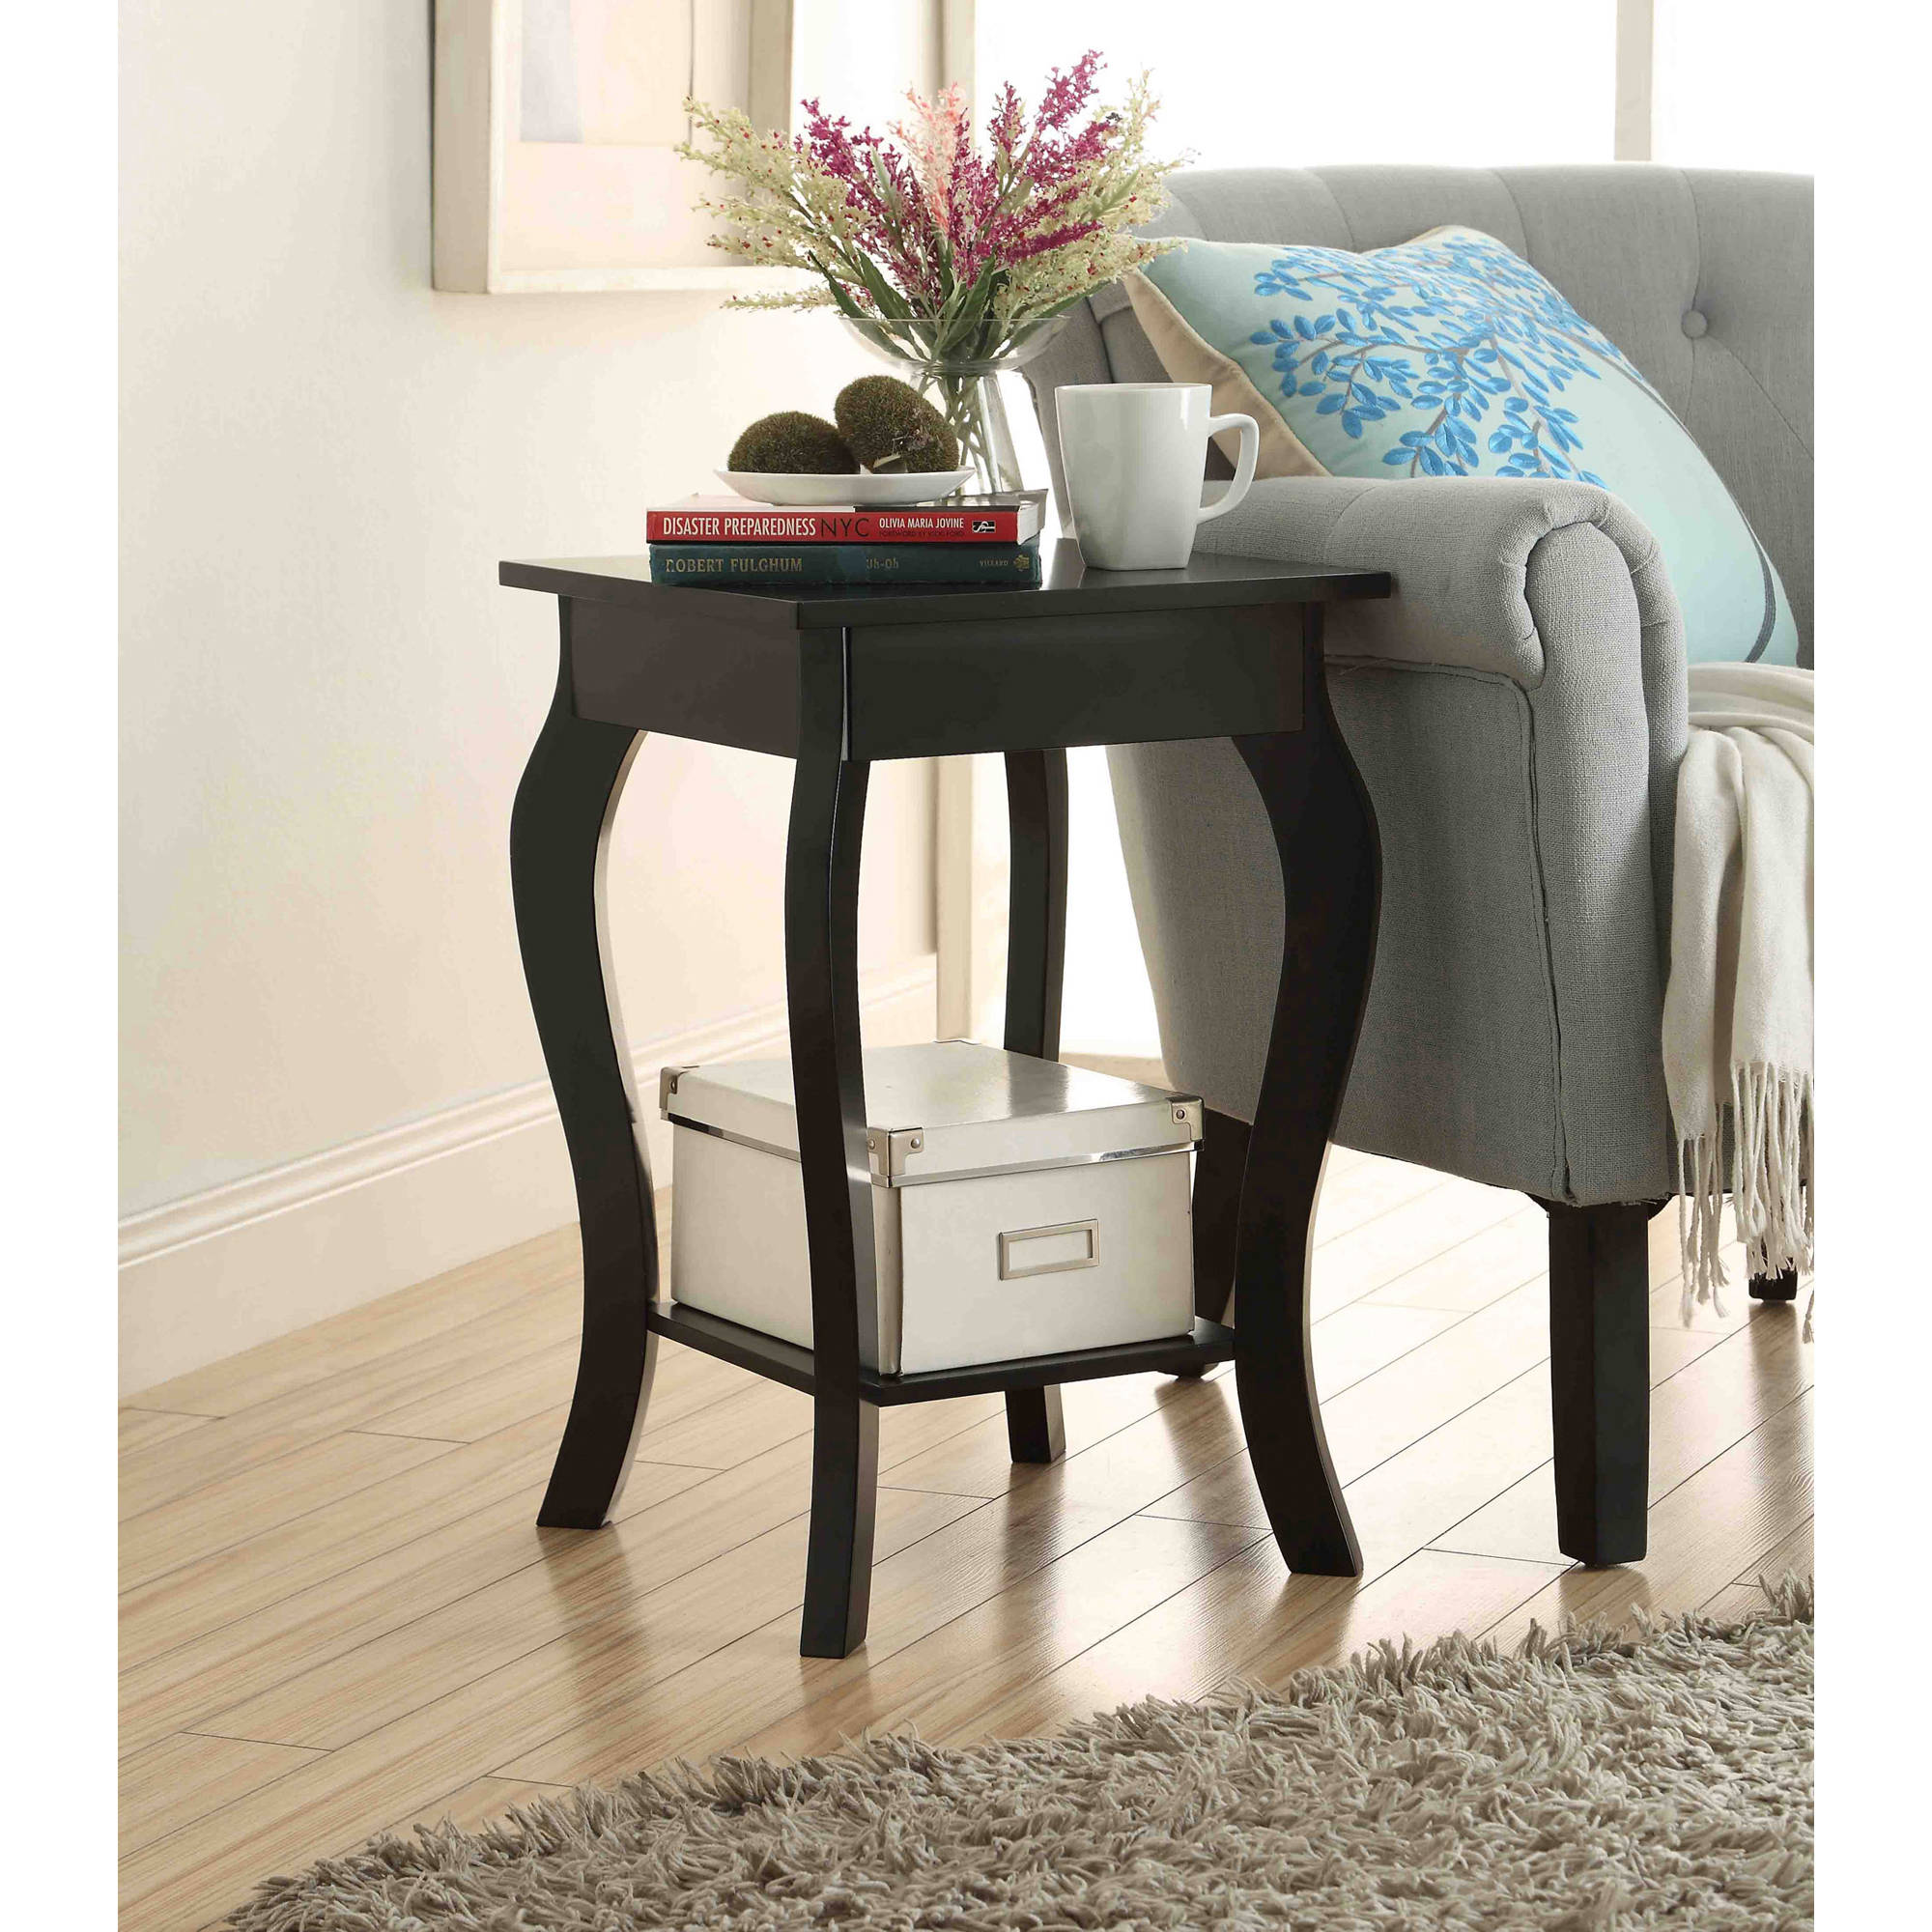 delectable target accent end tables white for bench and storage ott kijiji furniture decorative cabinet outdoor living gold antique tall threshold glass round modern room table